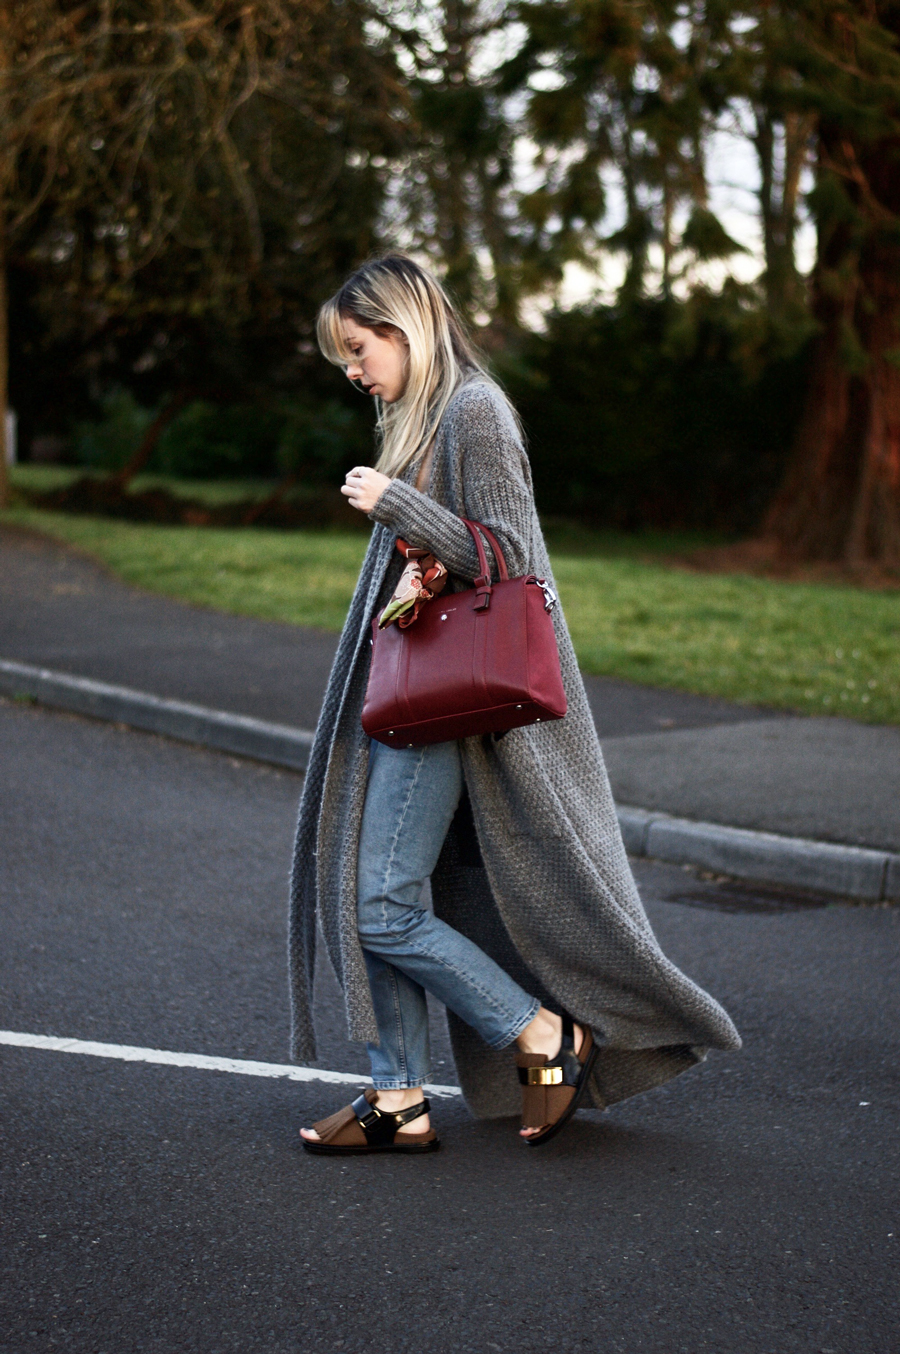 Simplicity & Casual Style Comforts